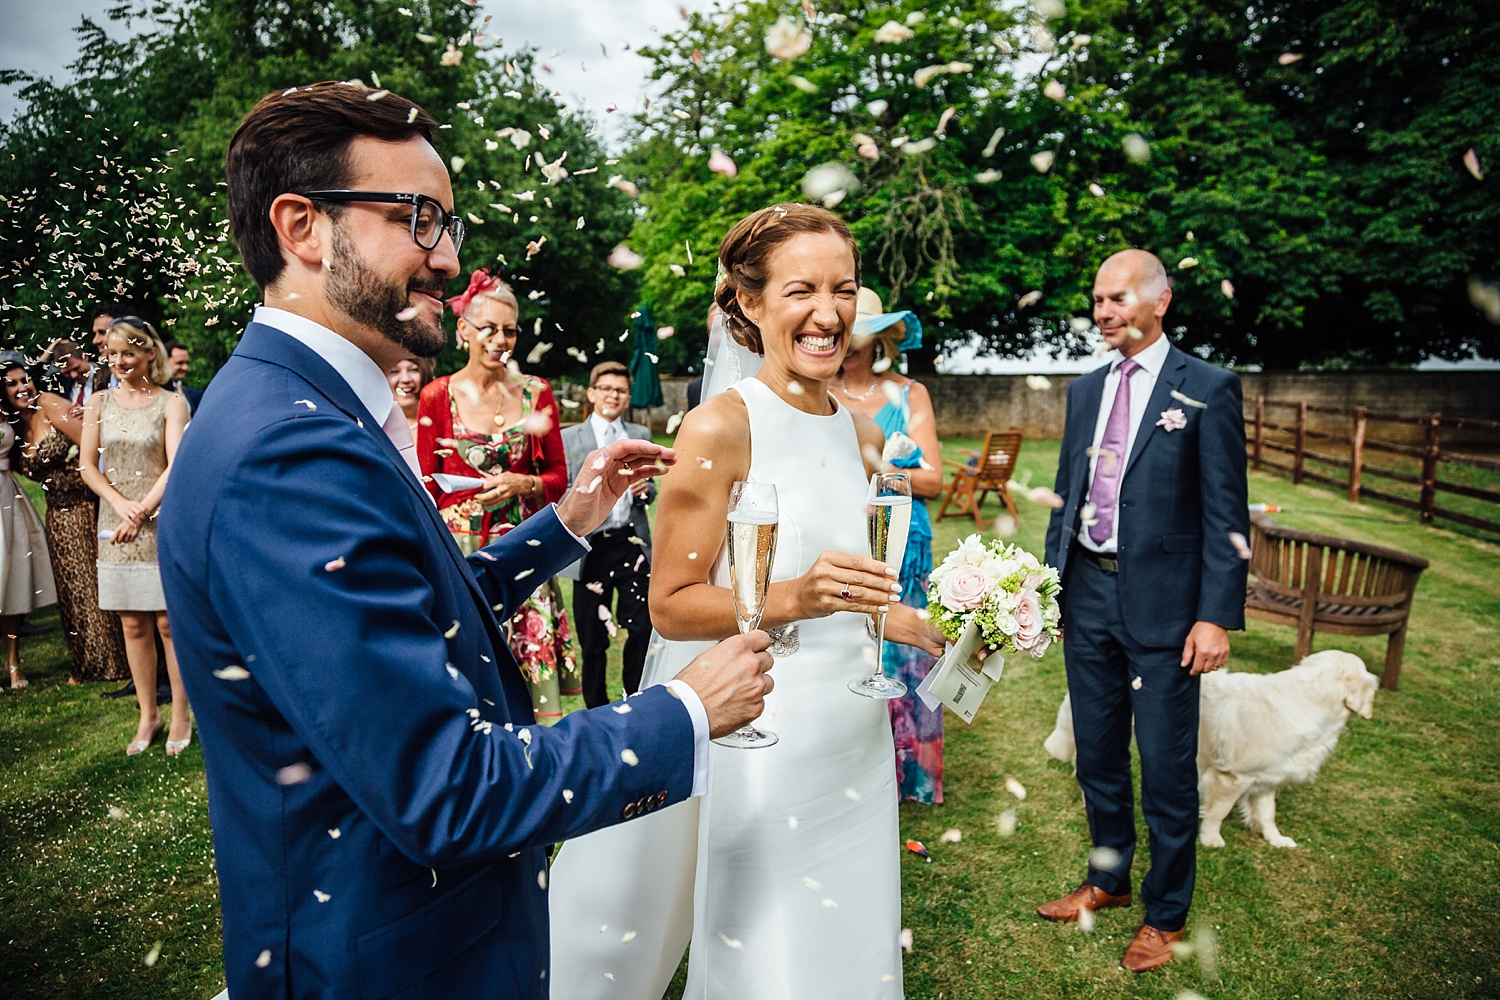 alexvictor-blog-natural-fun-relaxed-documentary-charlotte-jopling-wedding-photography-northamptonshire-home-garden-country-summer-33.jpg